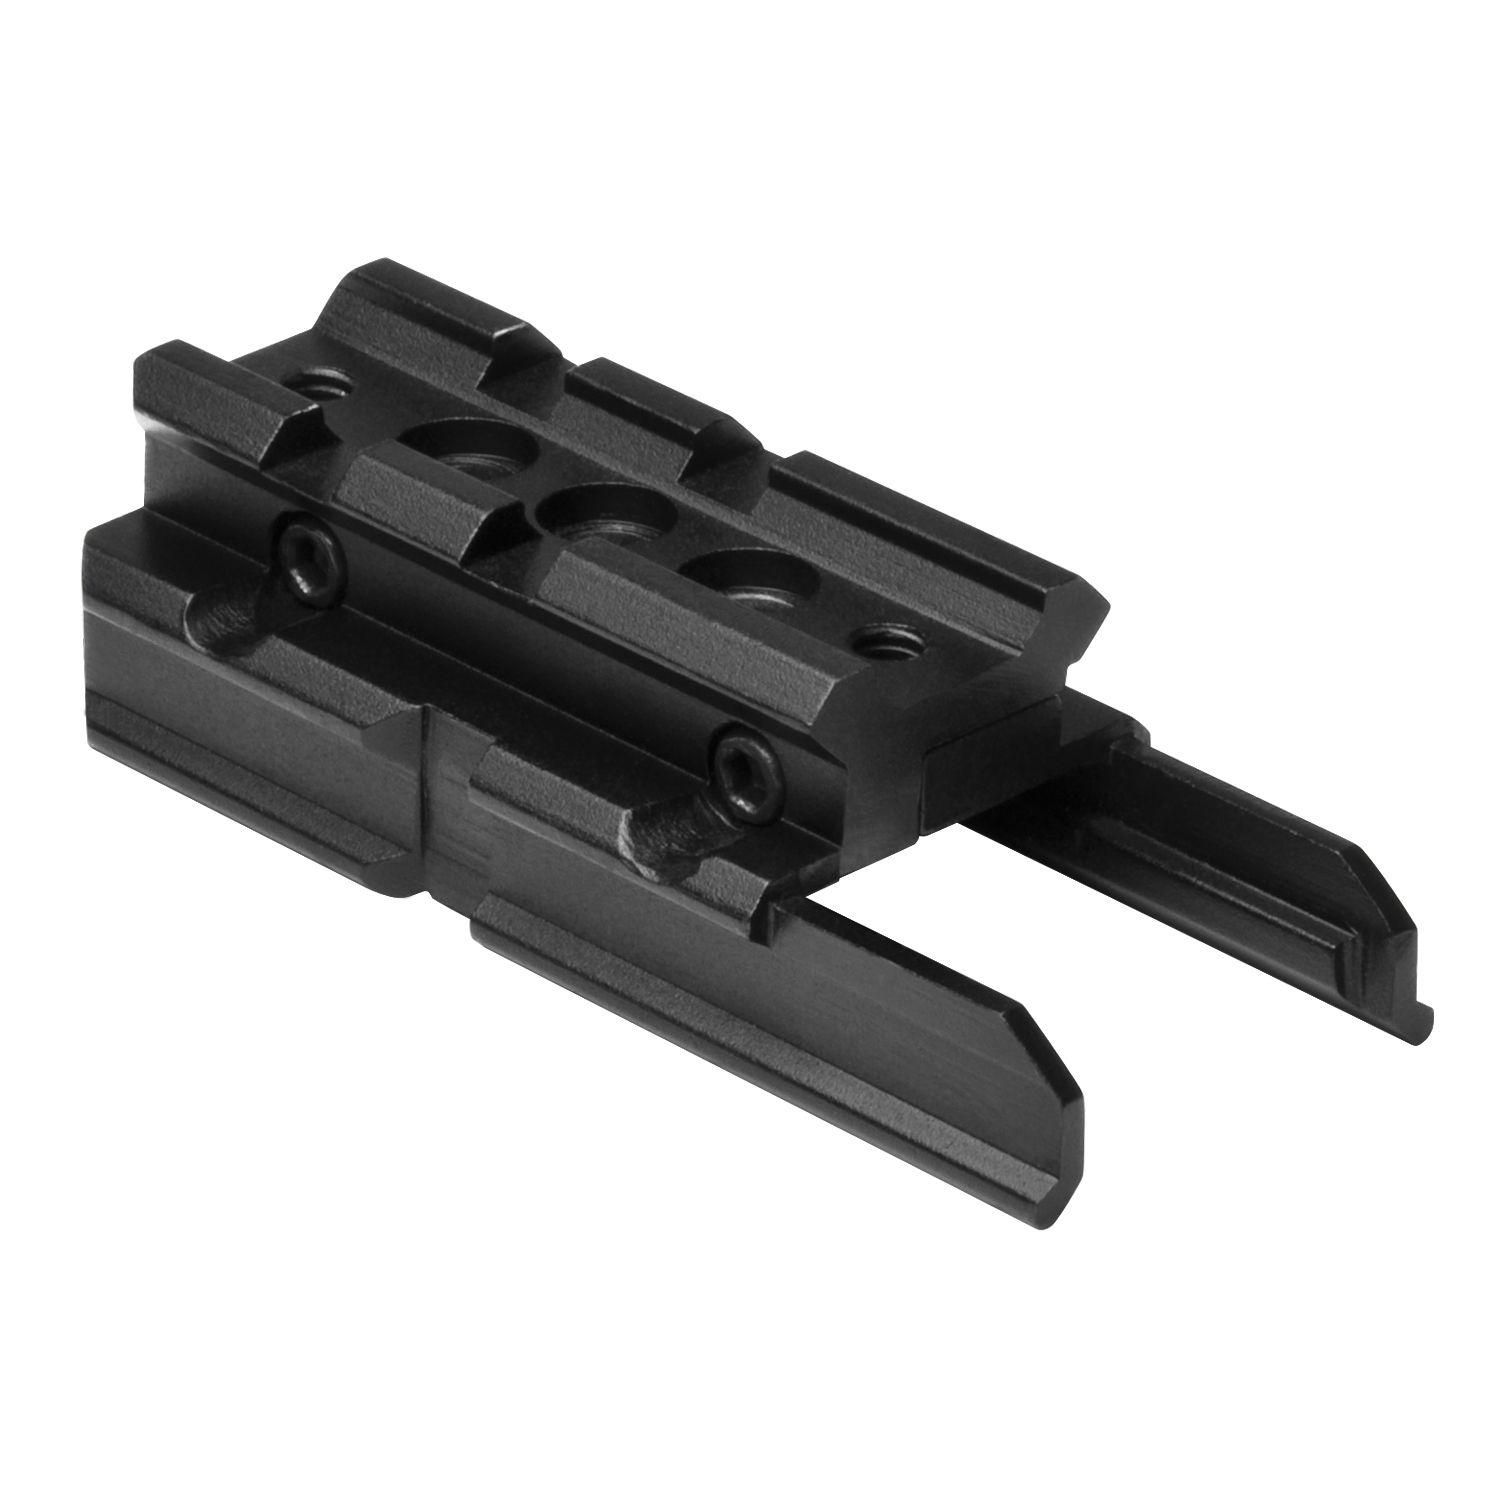 Ncstar HK USP Pistol Weaver Mount Conversion Adaptor